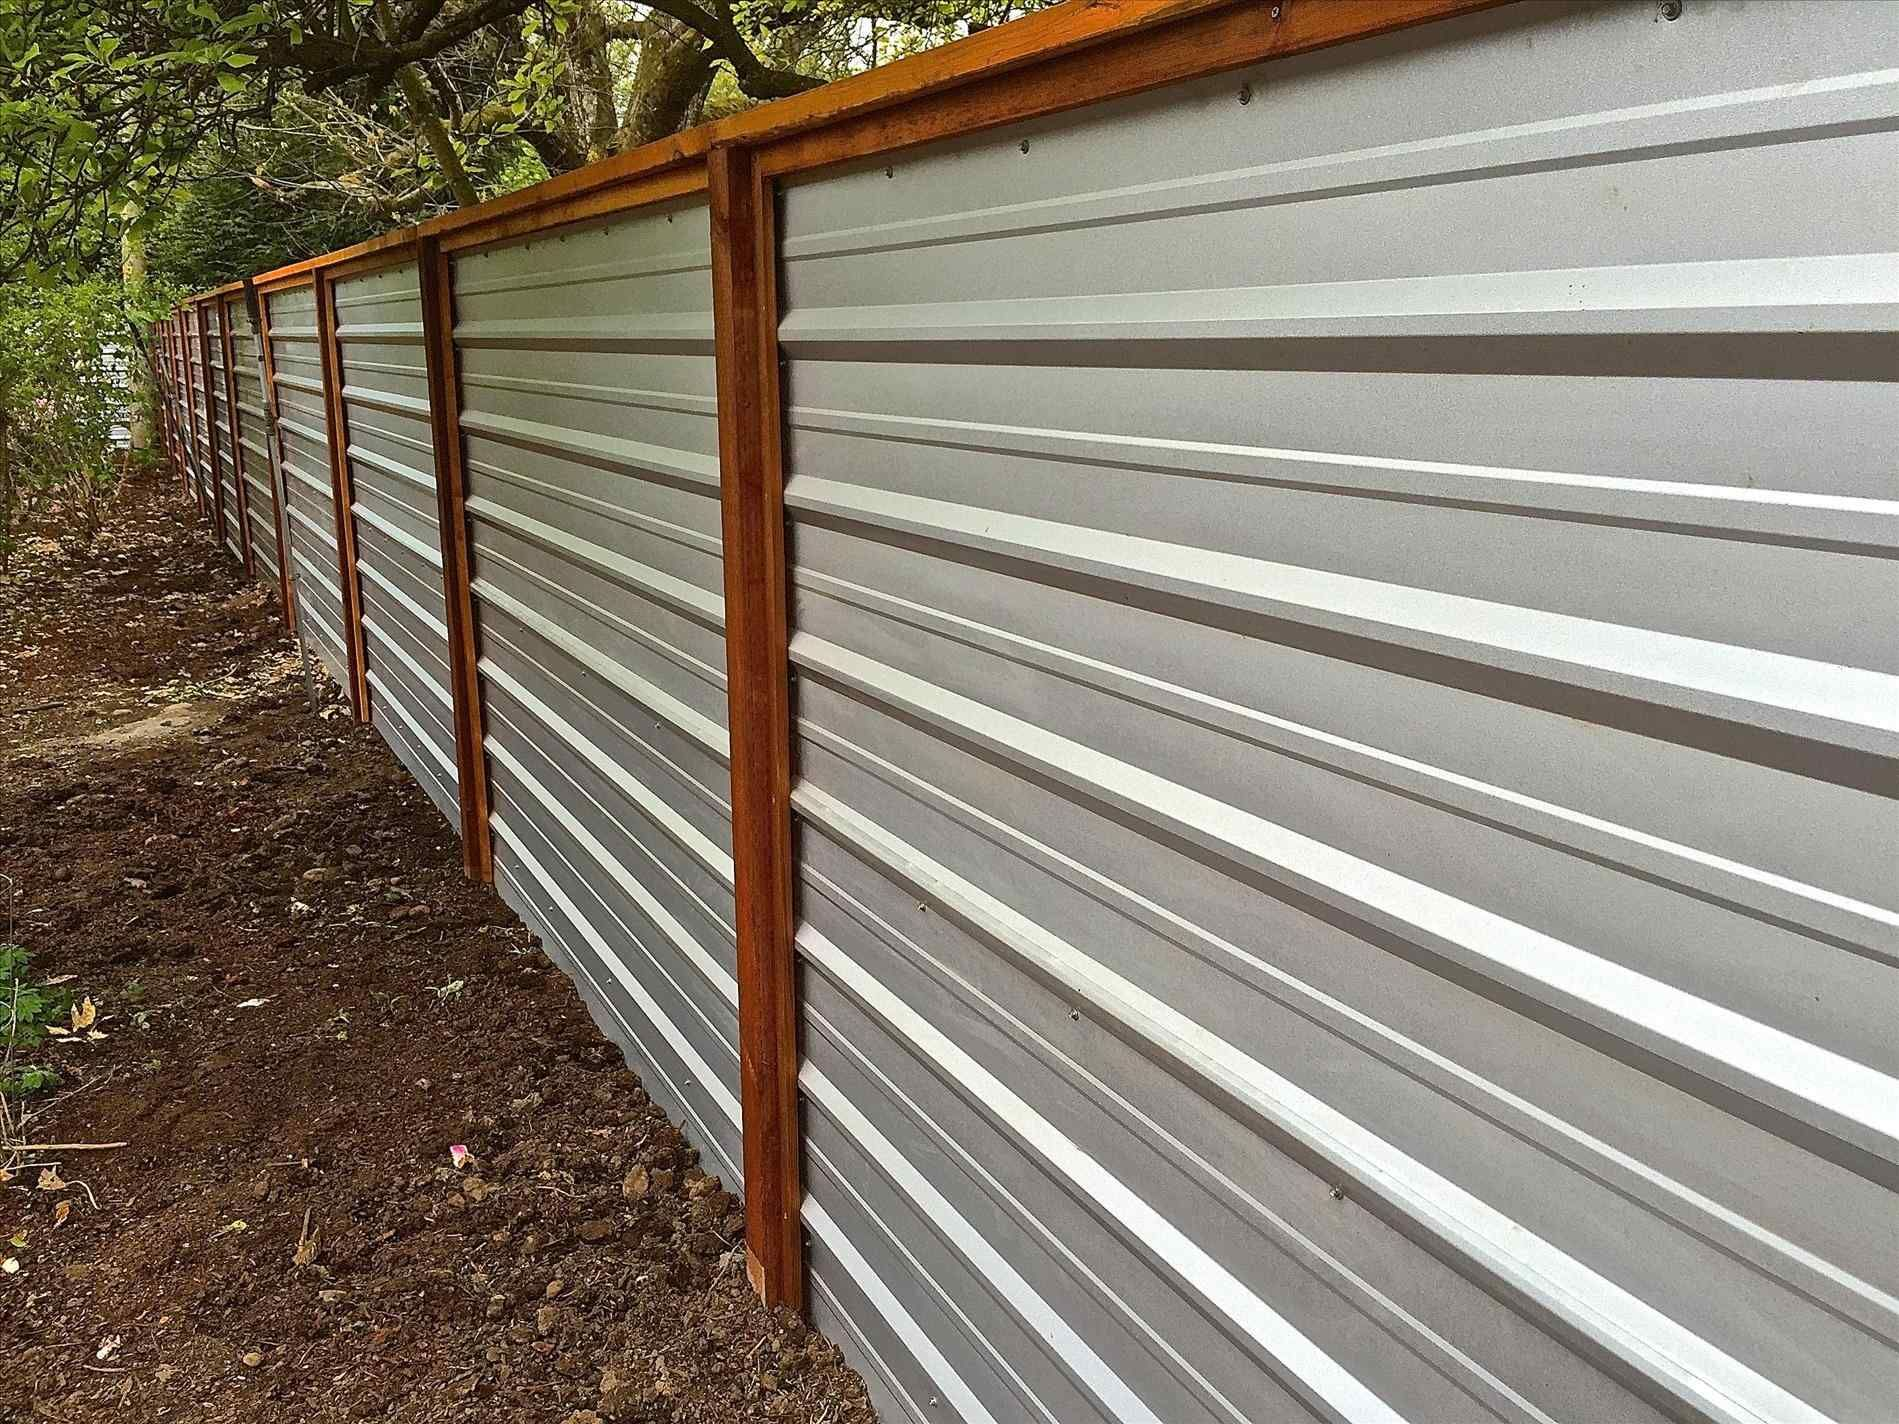 Galvanized Corrugated Metal Roofing Panels Home Roof Ideas Corrugated Metal Fence Cheap Privacy Fence Metal Fence Panels